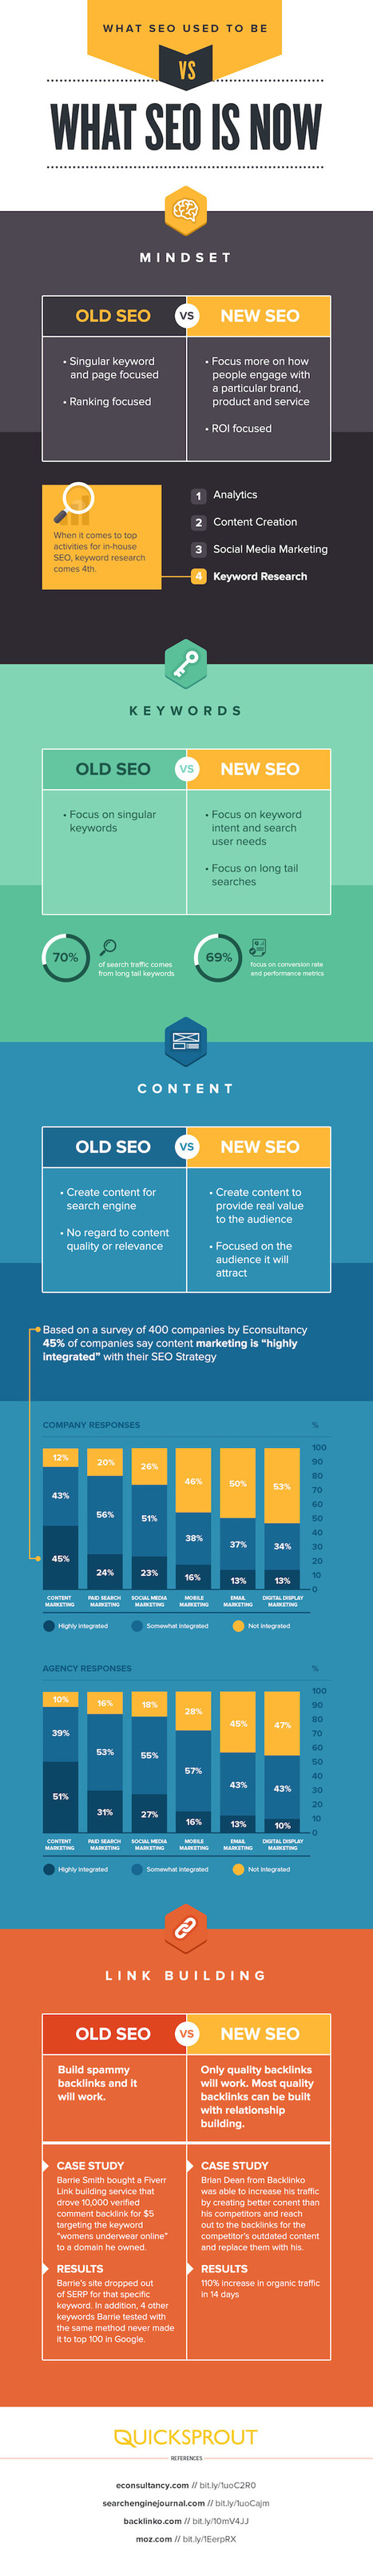 The Evolution of SEO #Infographic | MarketingHits | Scoop.it